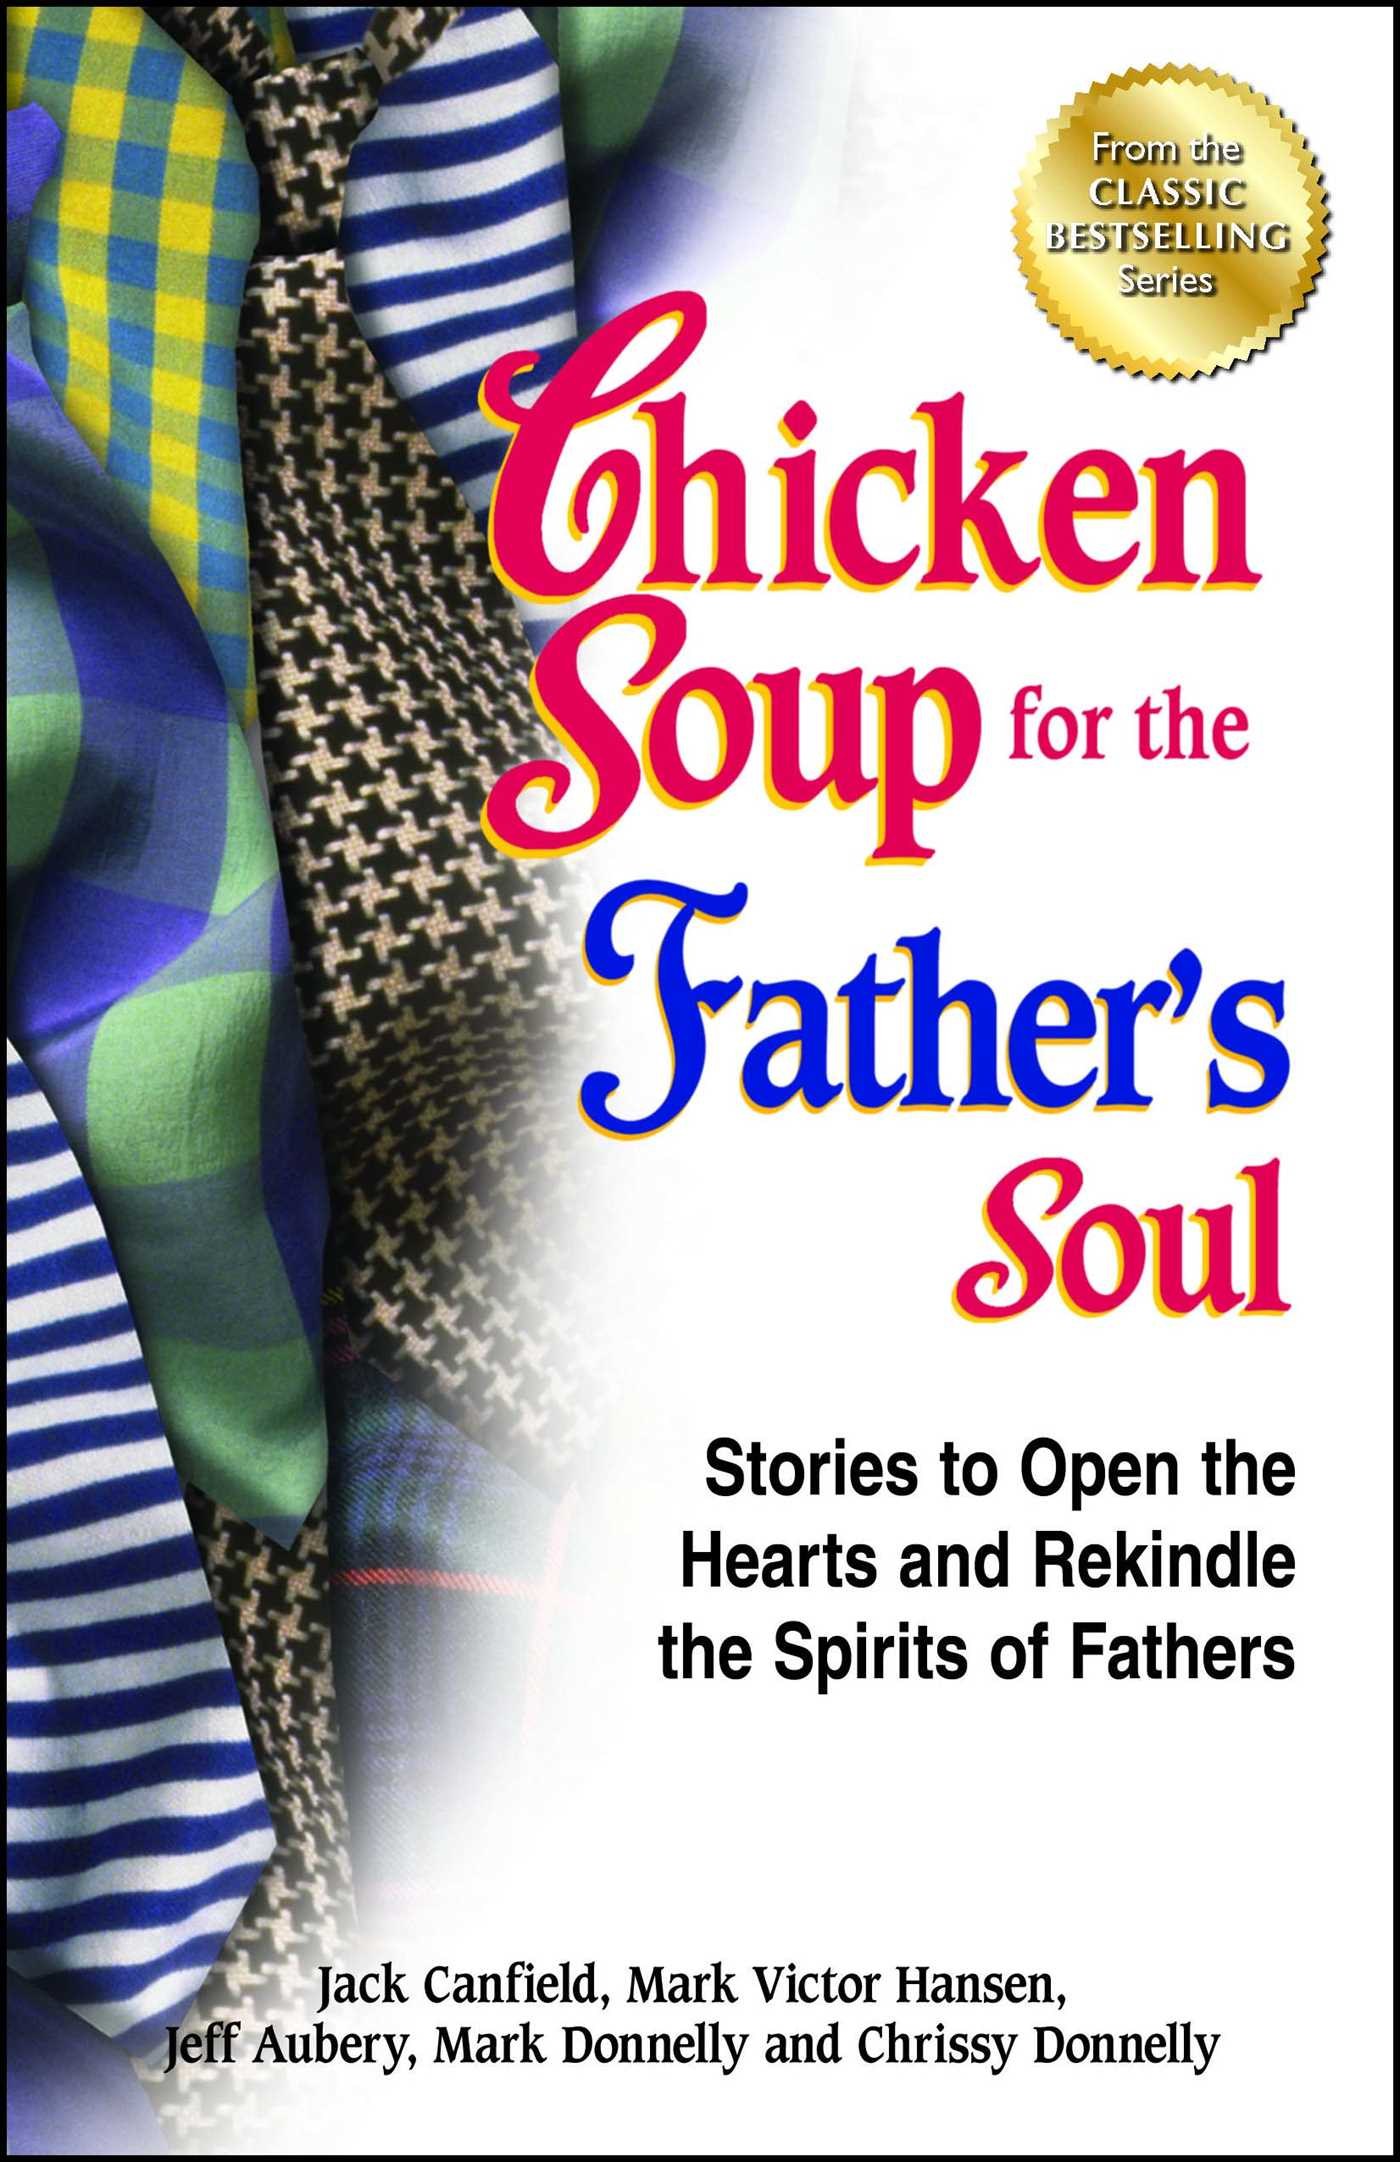 Chicken soup for the fathers soul 9781623610999 hr